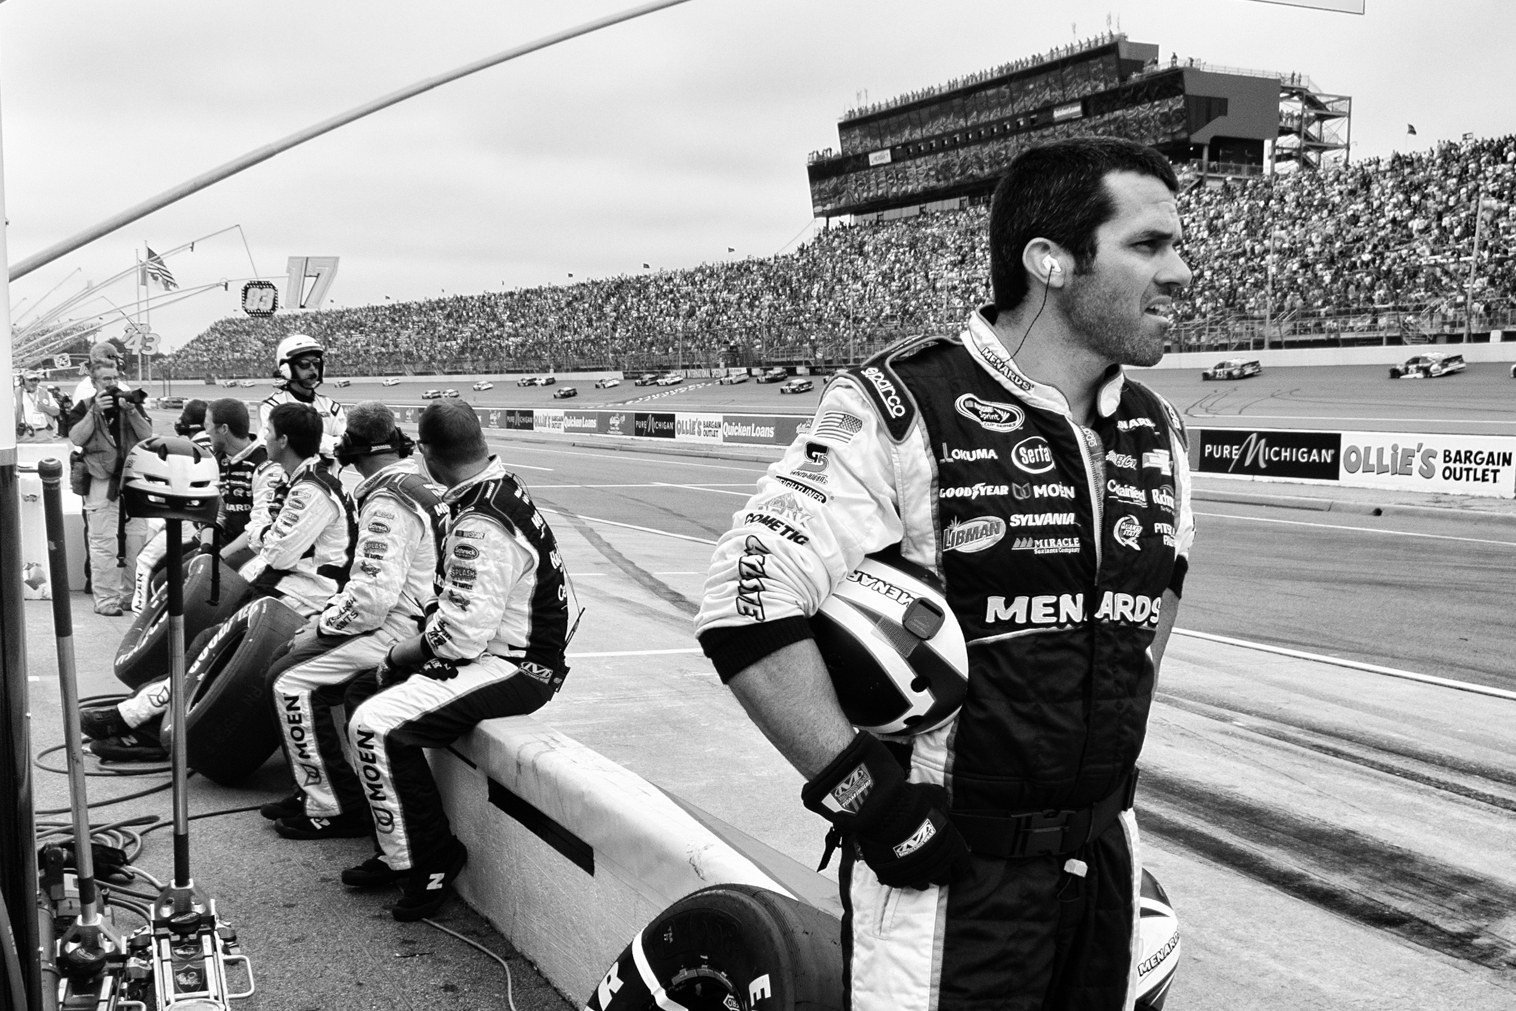 RAY WRIGHT - I've seen the pit crews at work on TV. I thought I knew what I was seeing. I didn't.